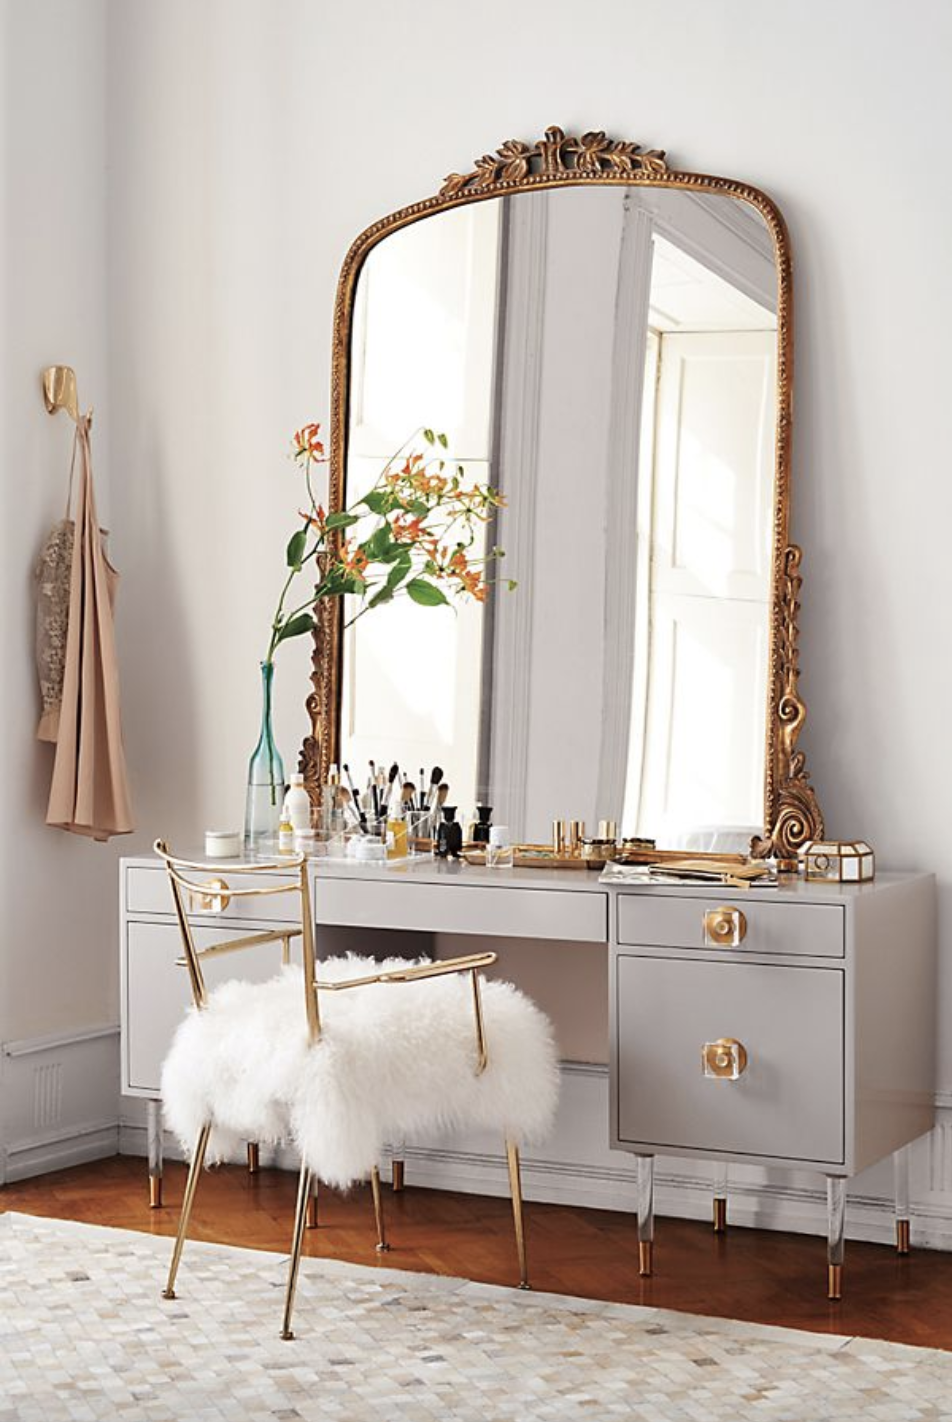 """Primrose"" - Gleaming ornate gold mirror, $448-1,548; Anthropologie"